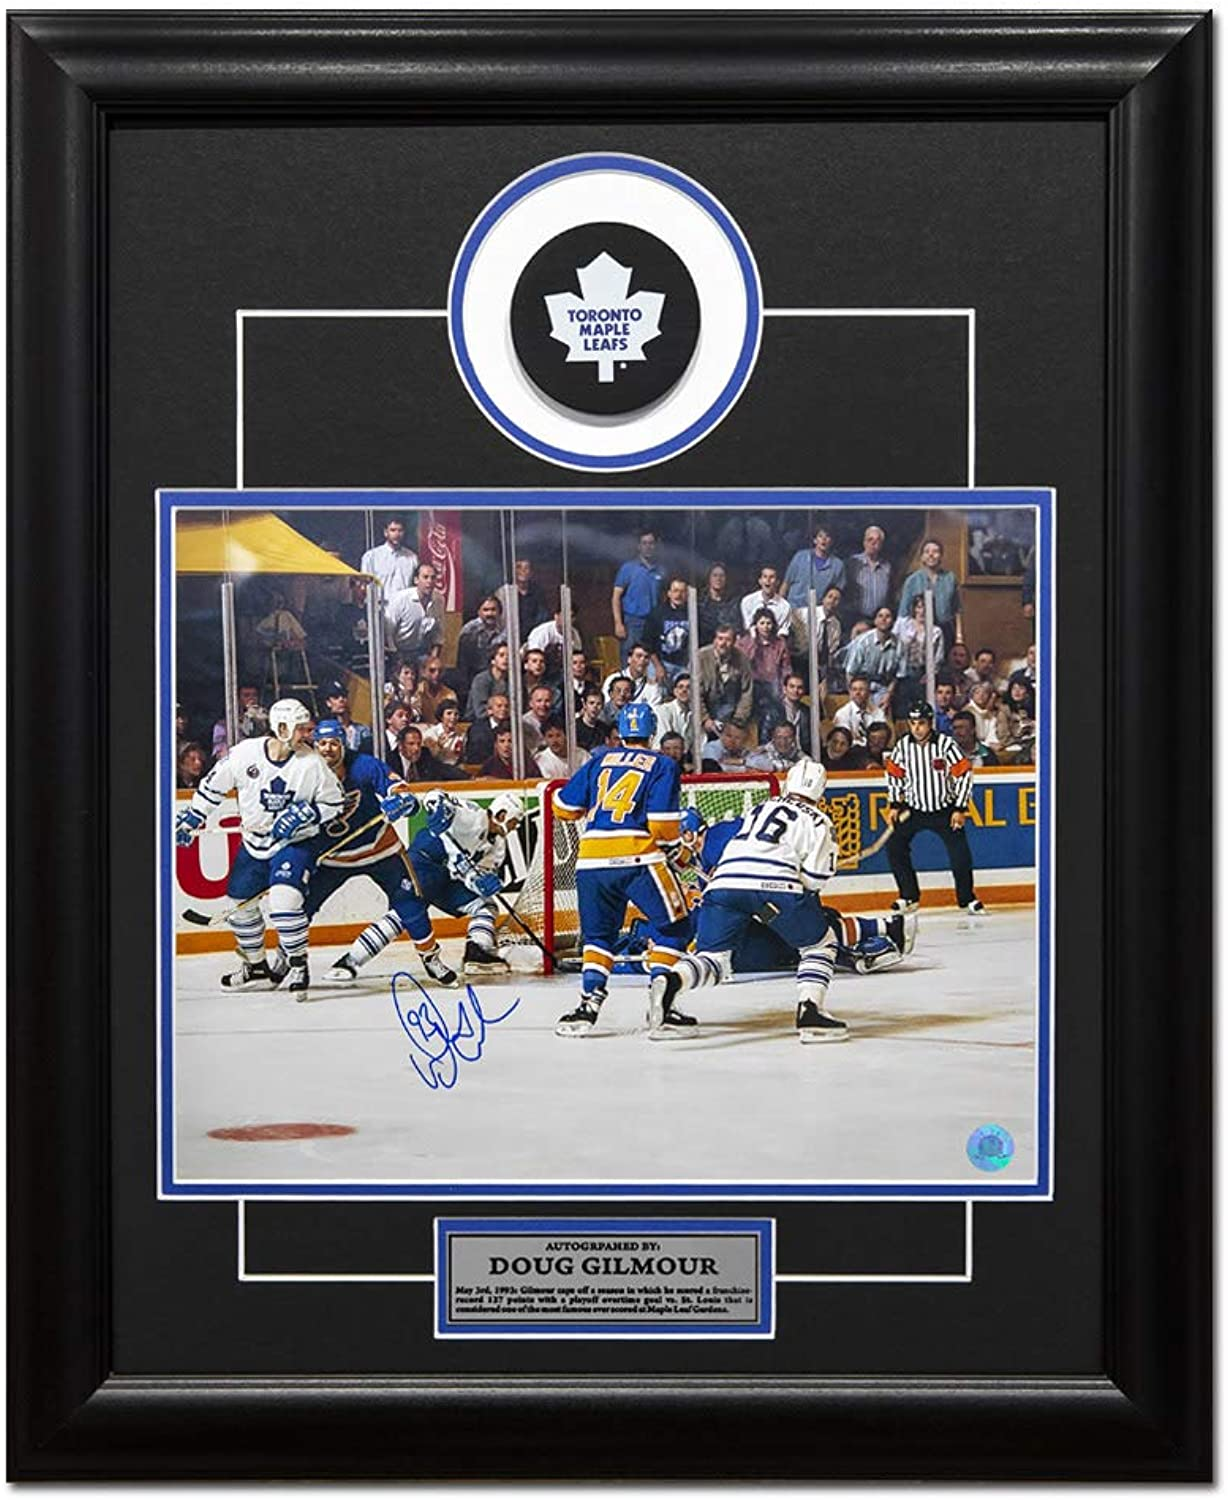 Doug Gilmour Tgoldnto Maple Leafs Autographed Wrap Around 19x23 Puck Frame